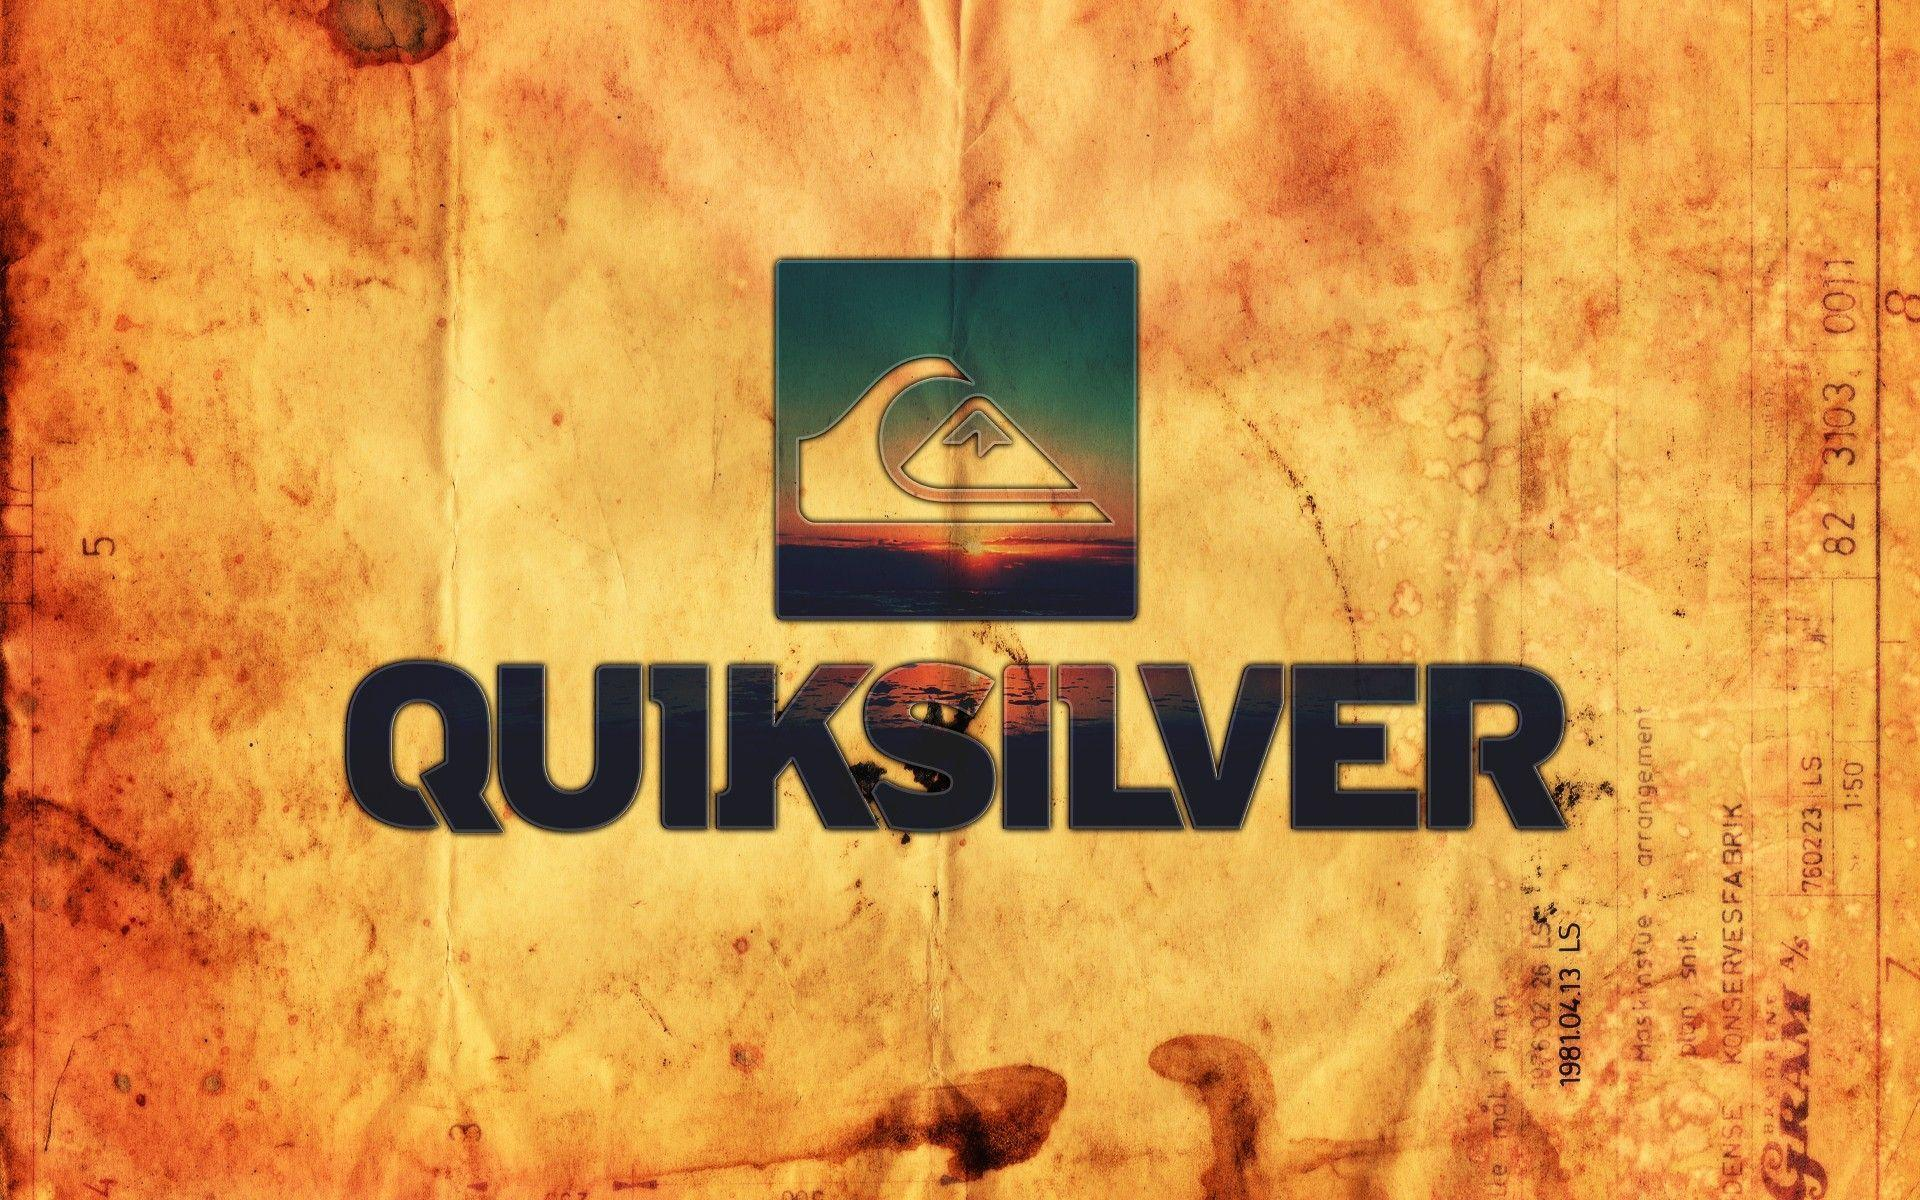 quiksilver surf wallpaper hd - photo #22